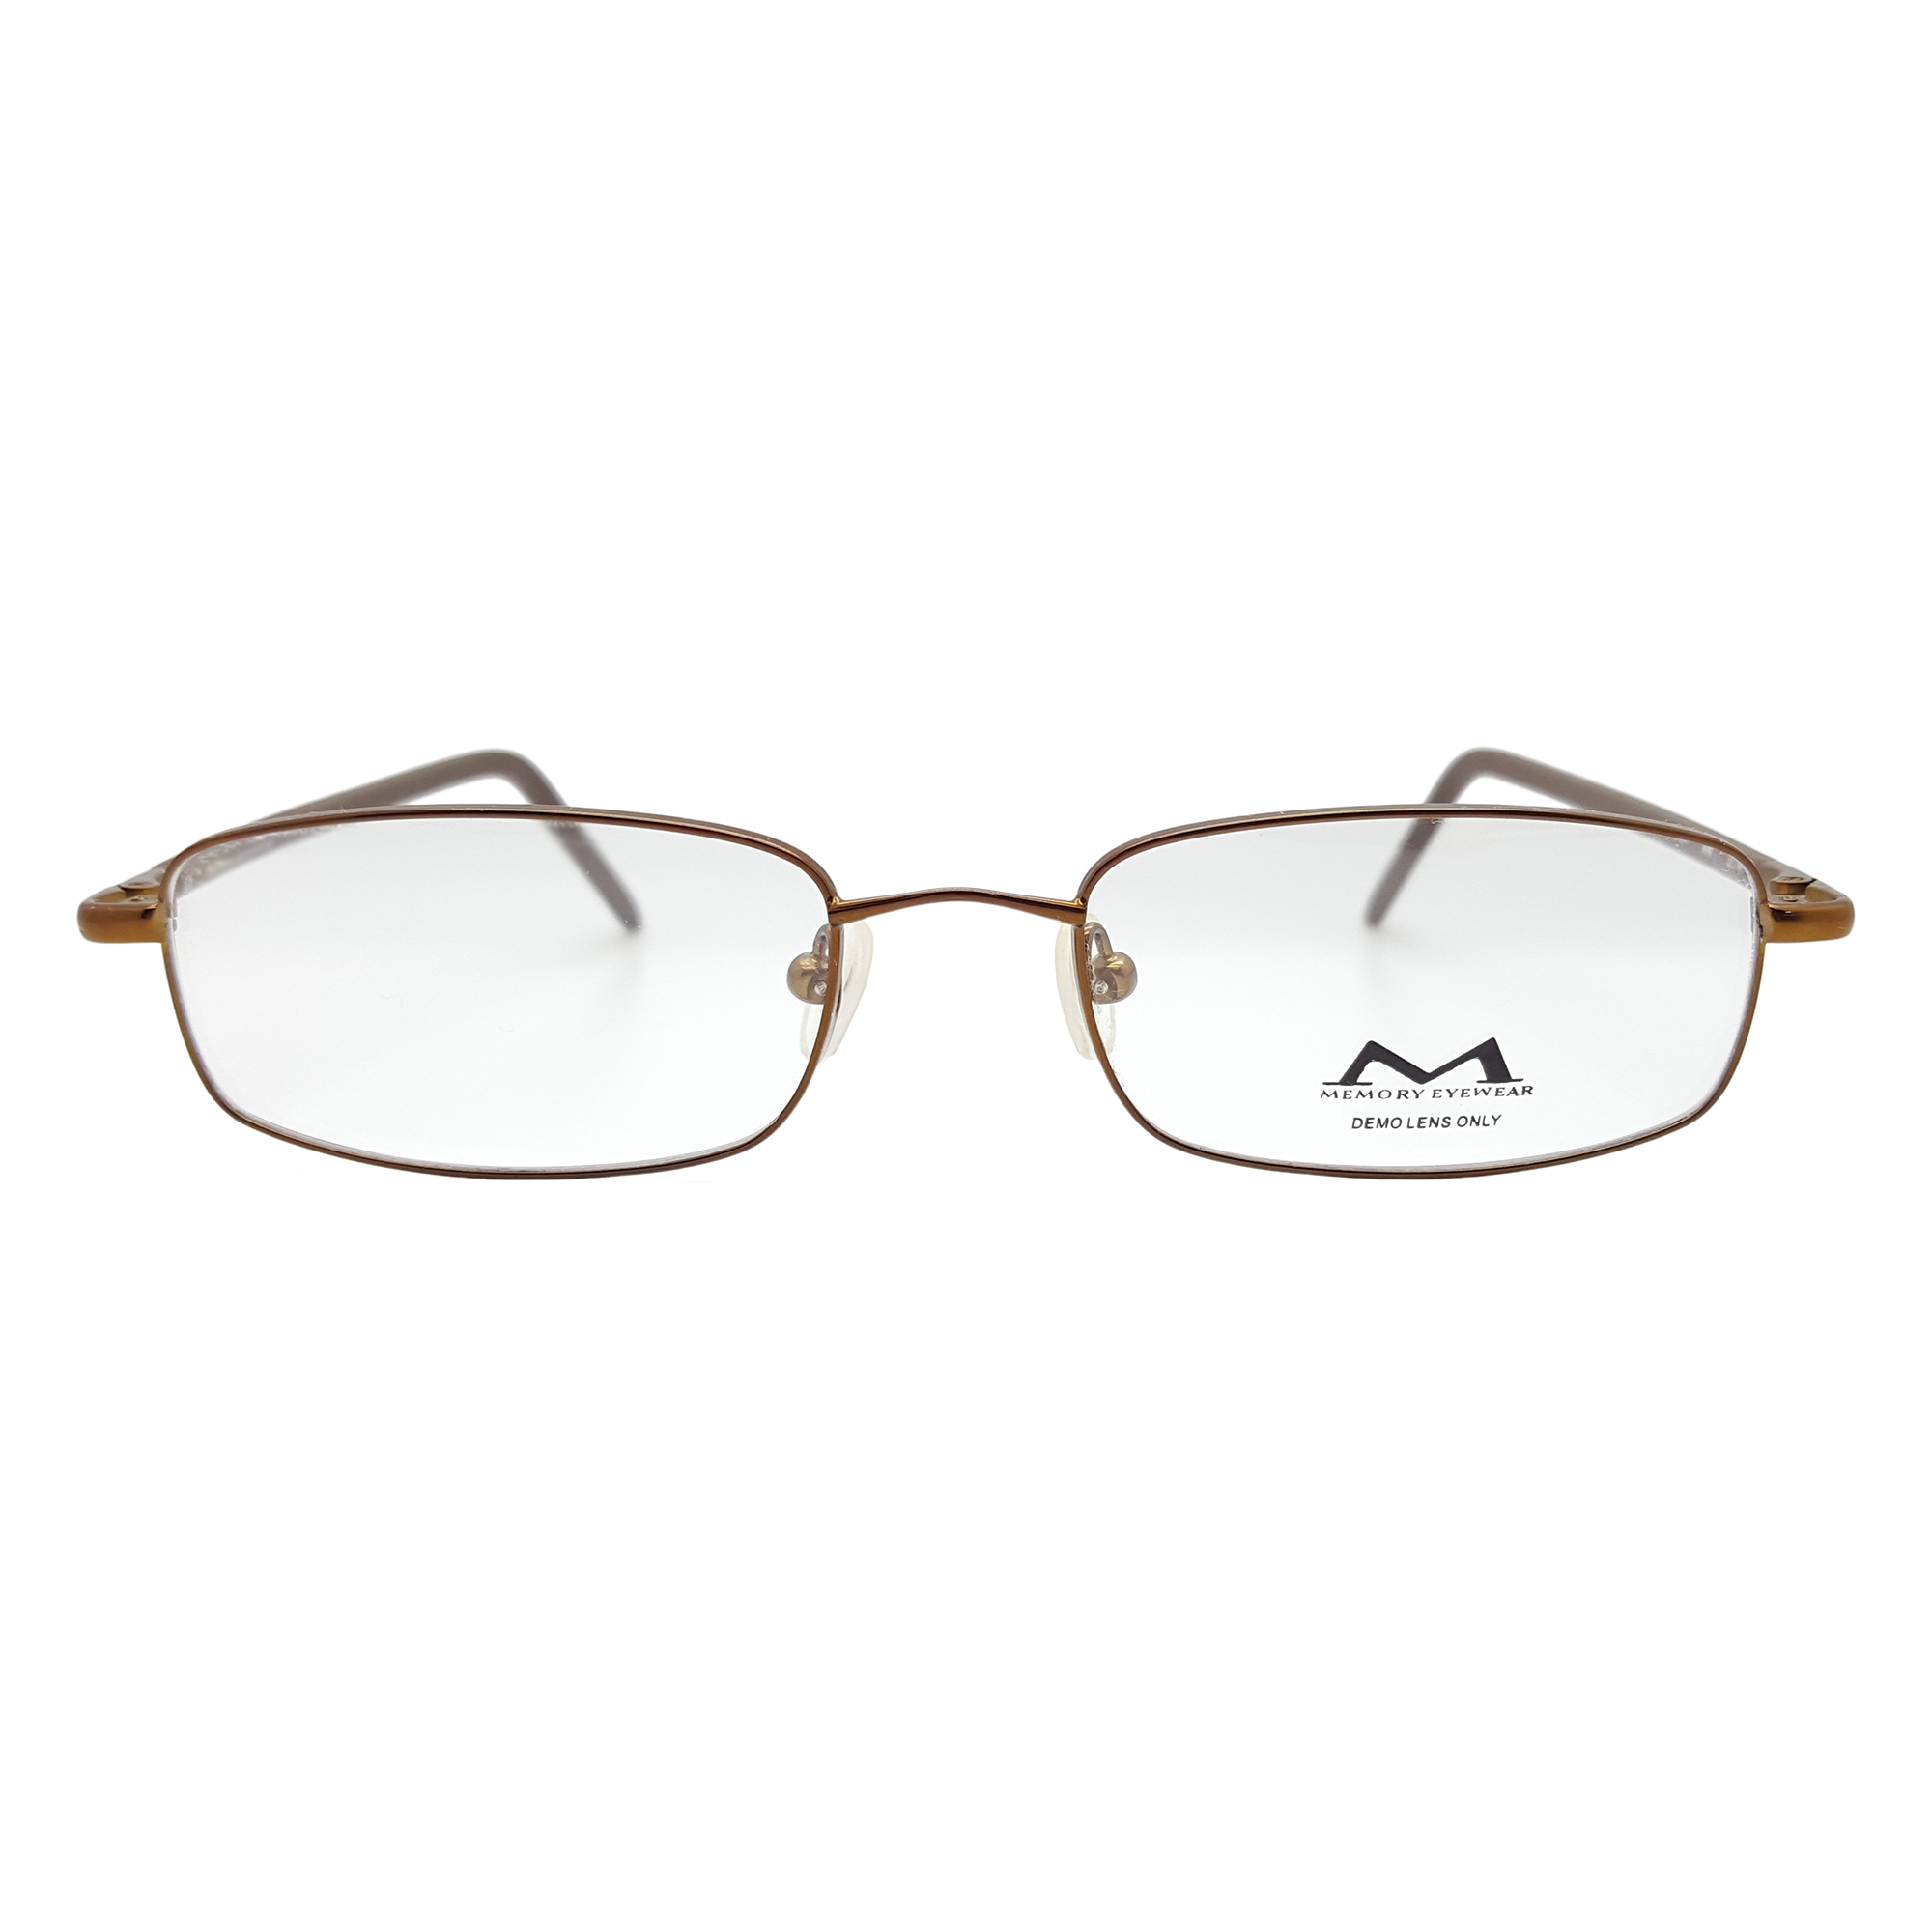 Memory Eyewear Men's Turner Eyeglasses Prescription Frames (Brown, 52-18-145) - Walmart.com | Tuggl